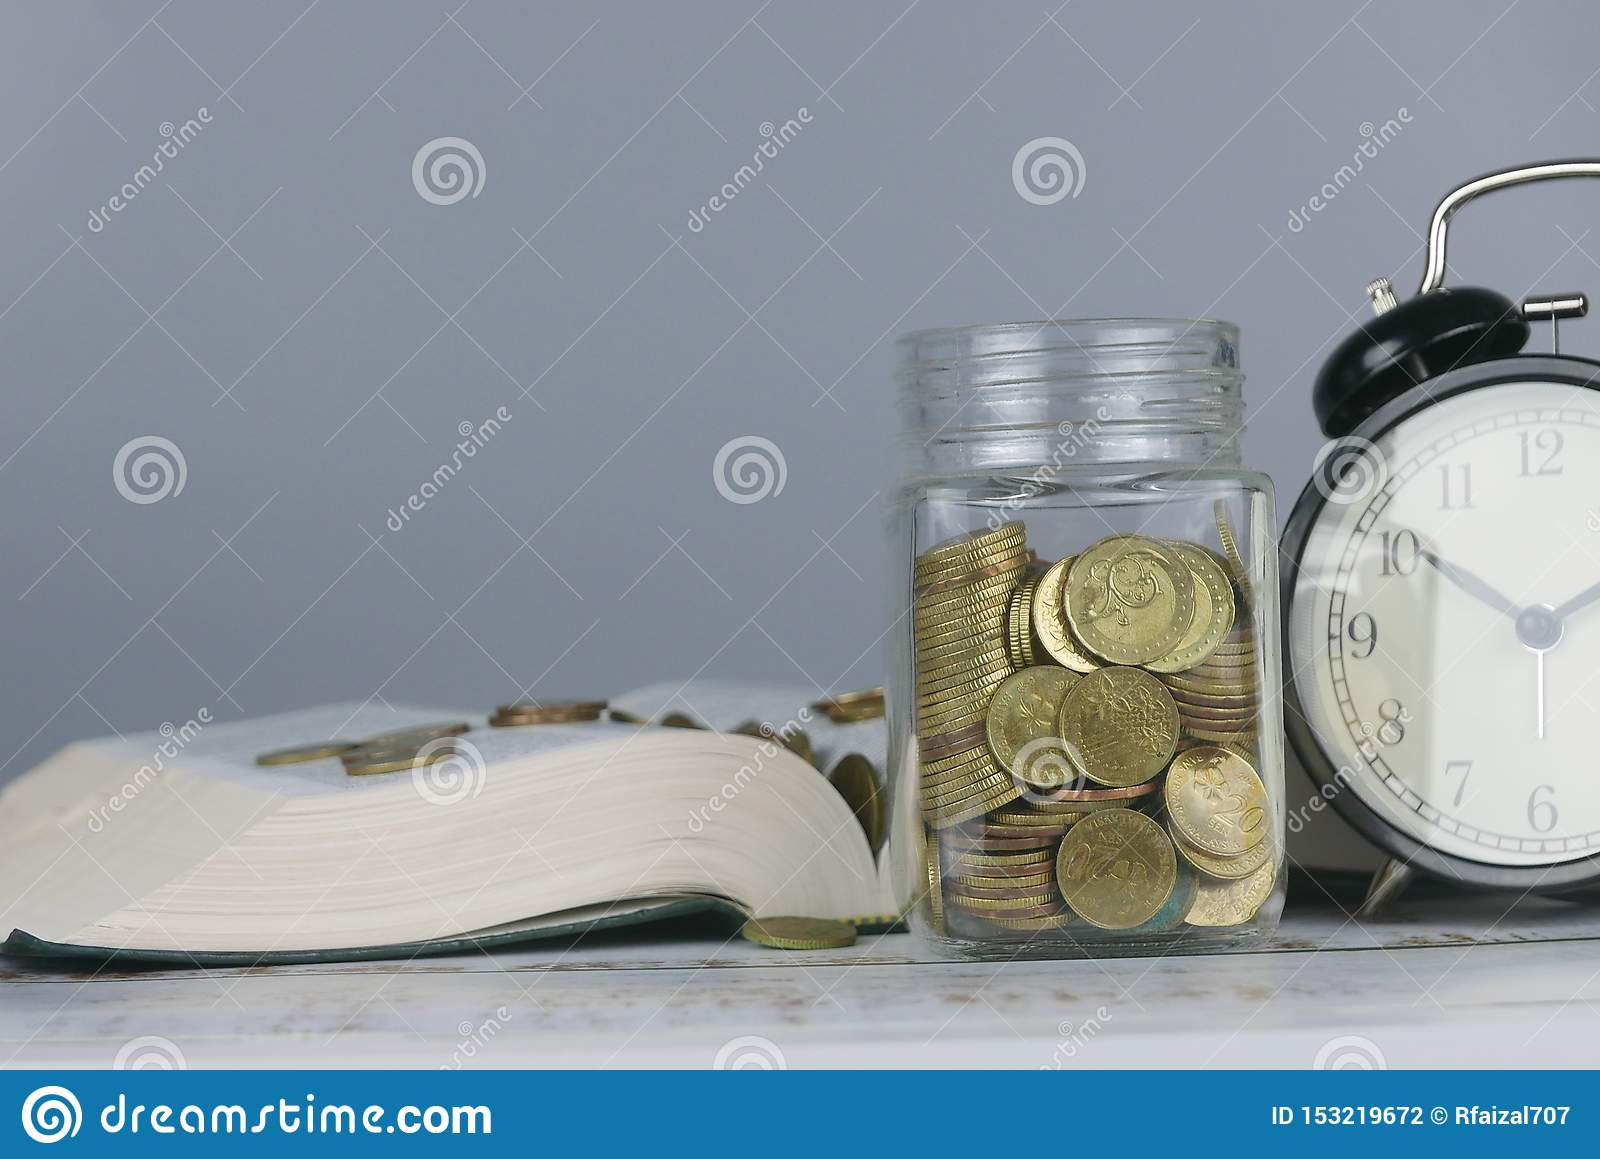 Selective focus of Gold coins on book with clock. Finance and education concept